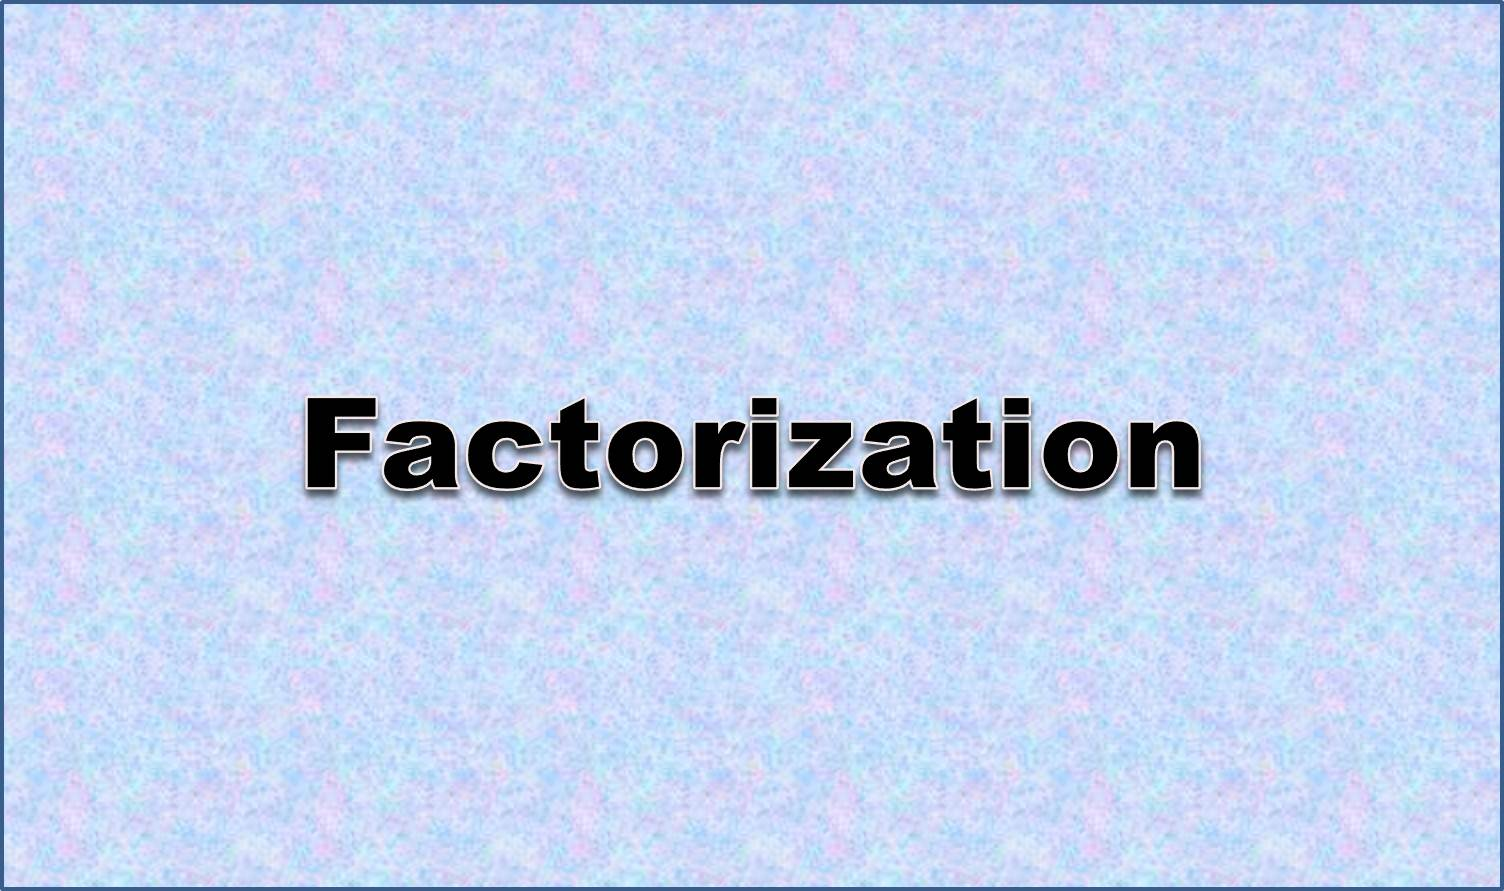 http://study.aisectonline.com/images/Factoring difference of squares-shared factors.jpg